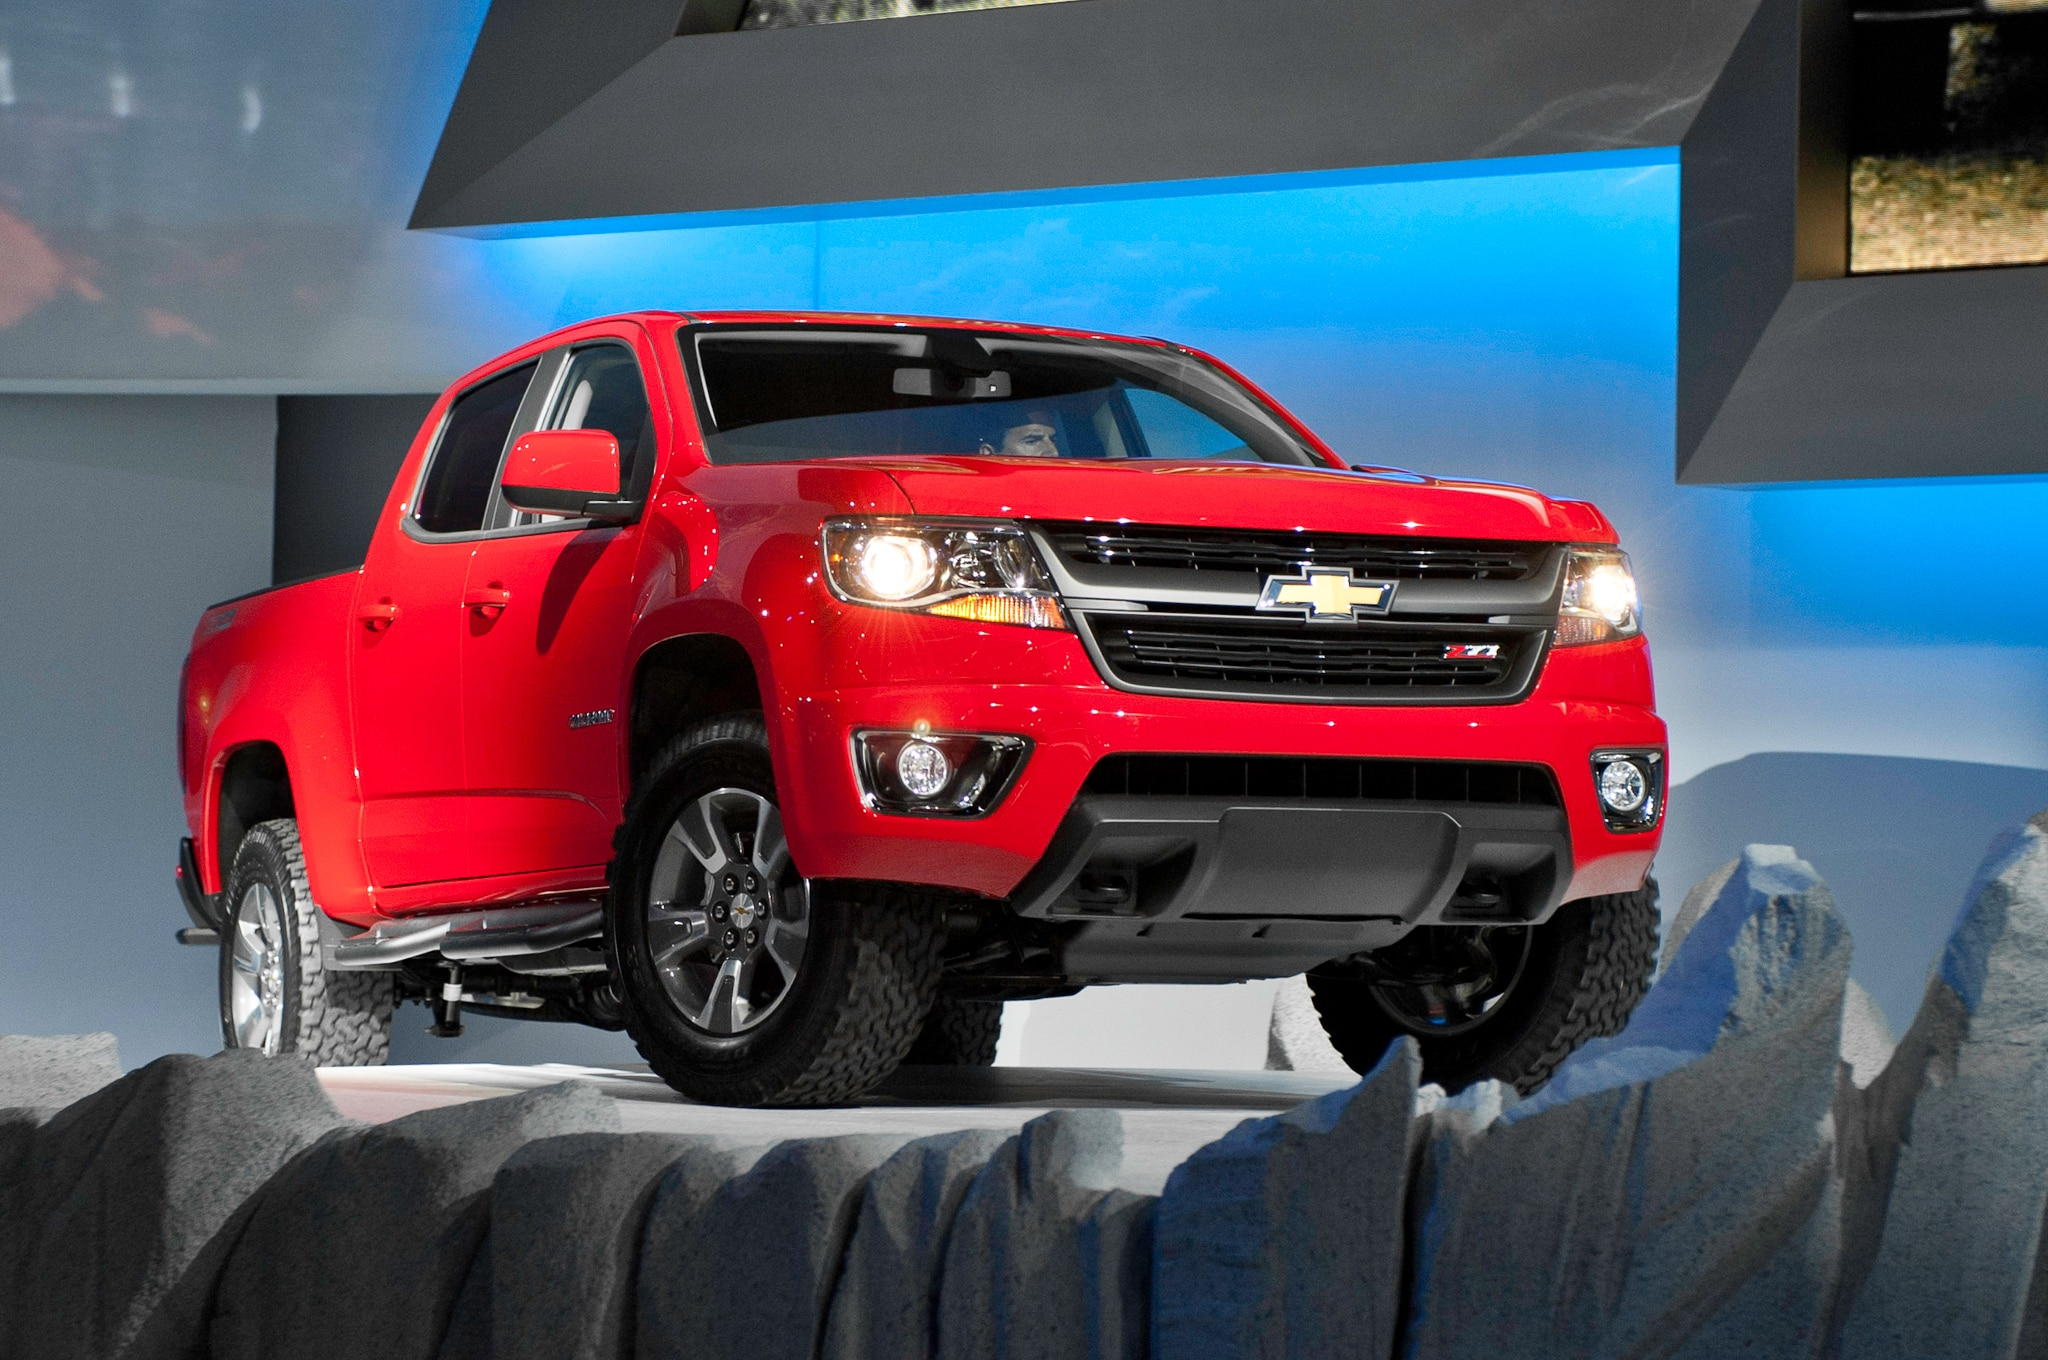 2015 Chevrolet Colorado front three quarters view 01